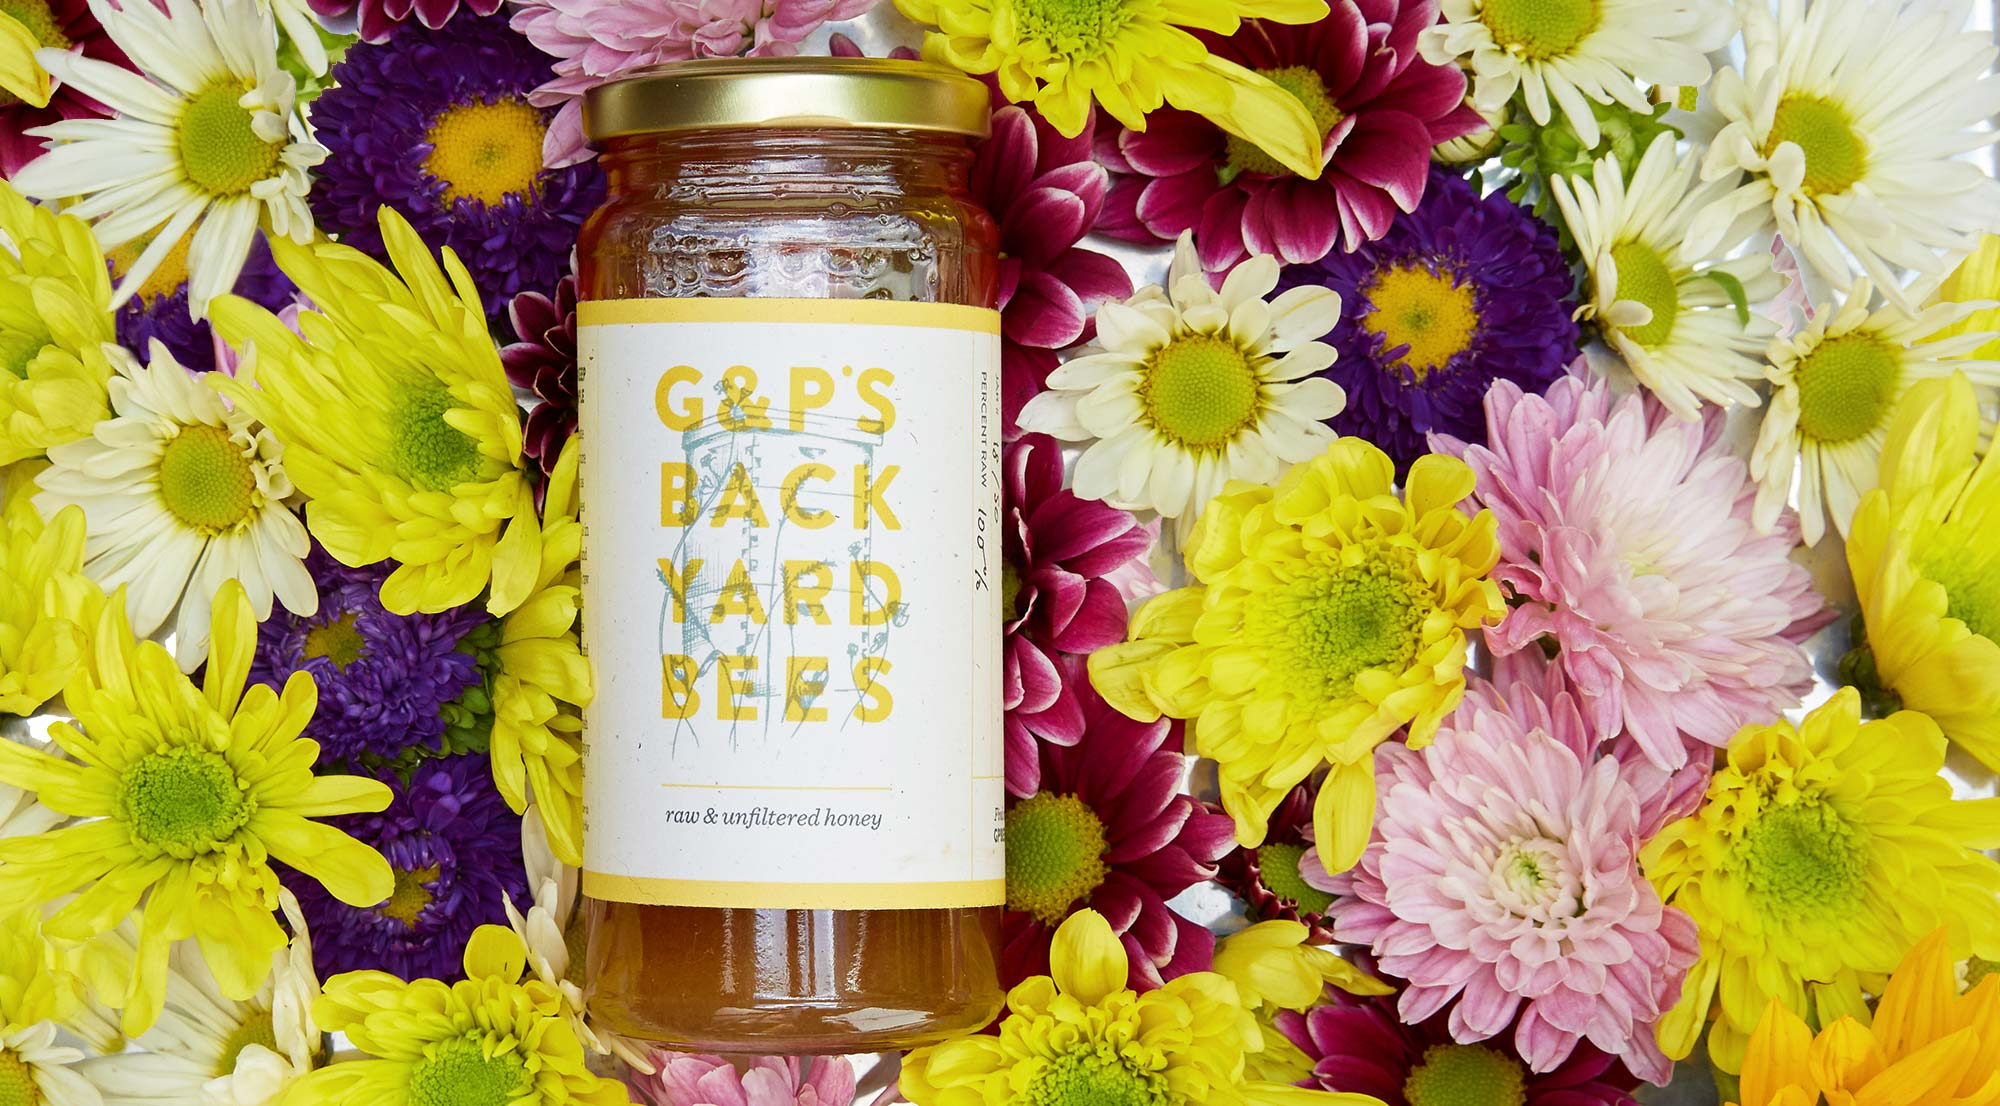 Packaging design showing honey jar